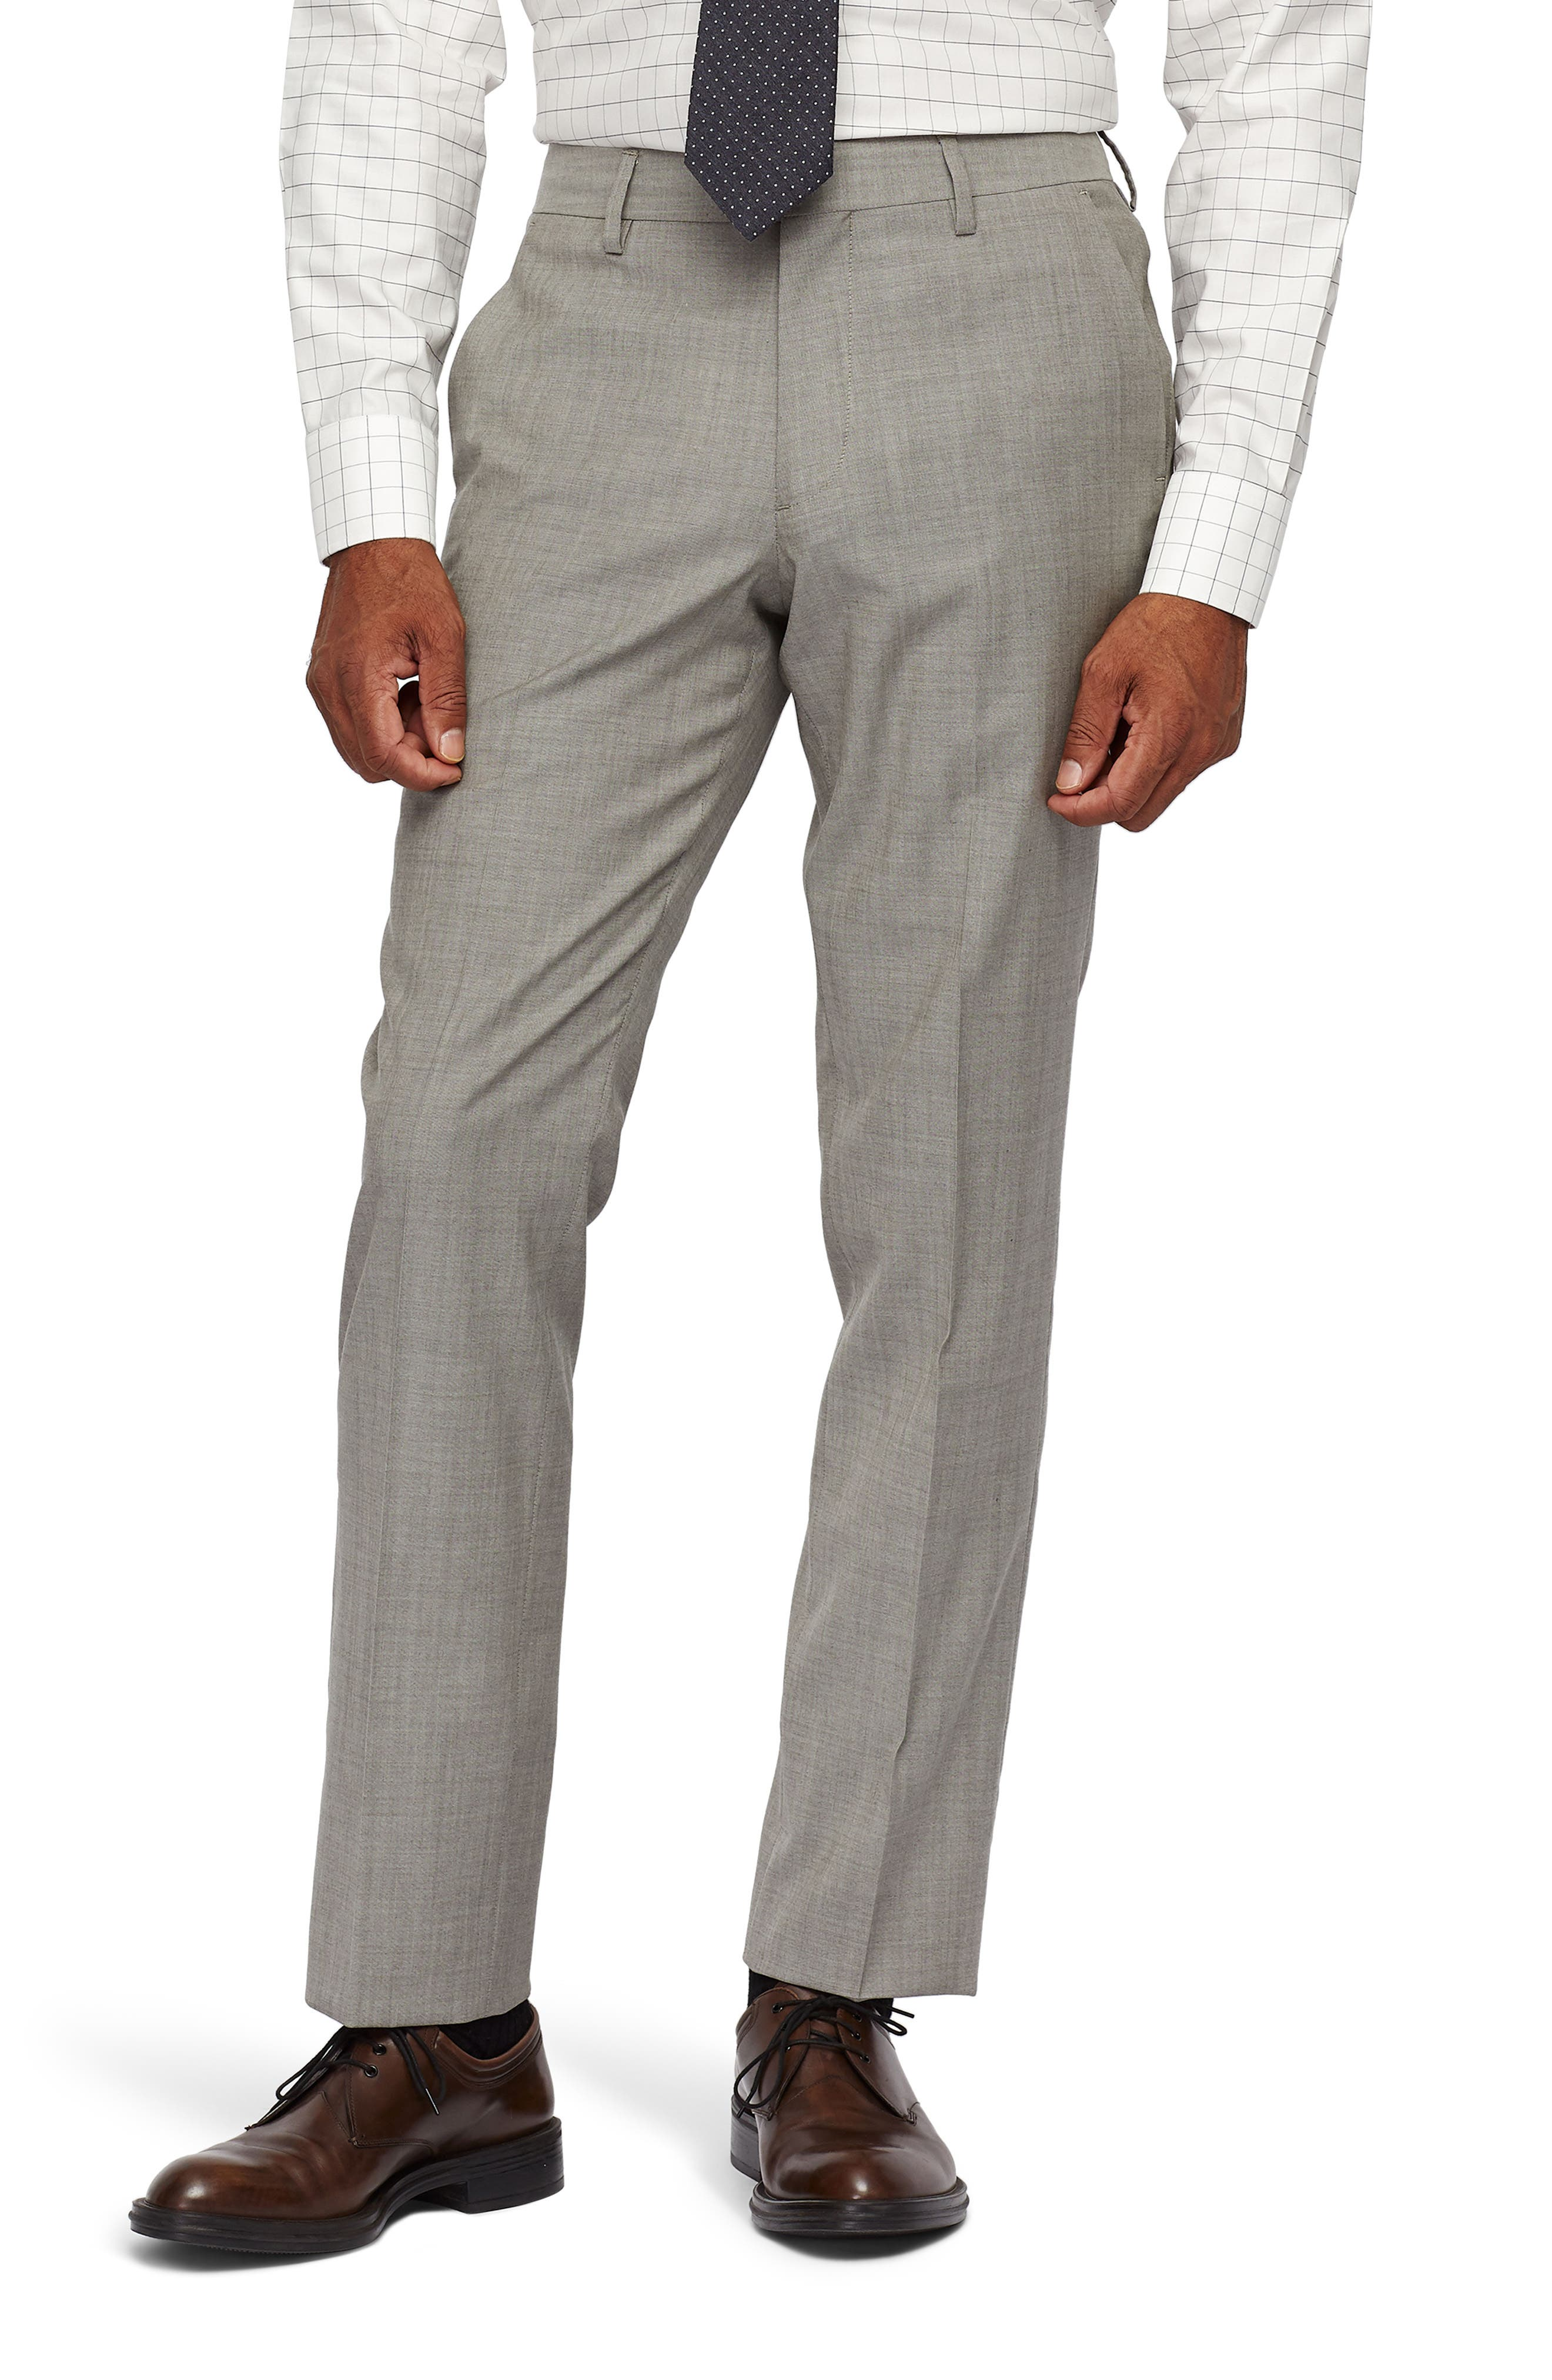 Jetsetter Slim Fit Stretch Suit Pants,                             Main thumbnail 1, color,                             LIGHT BROWN